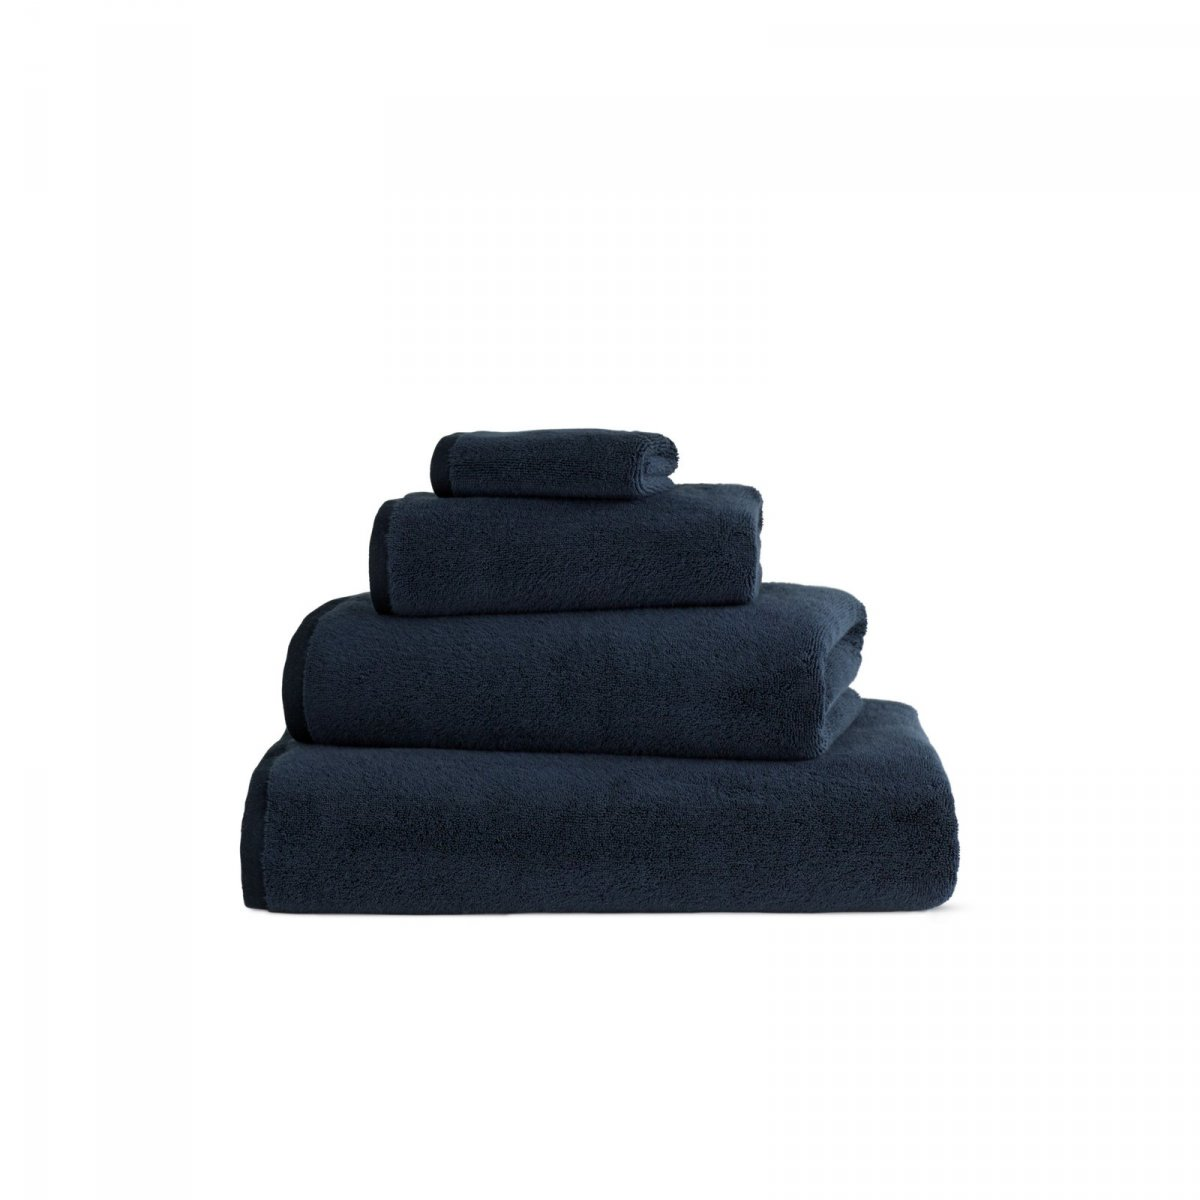 DWR Aerocotton Towels, indigo.